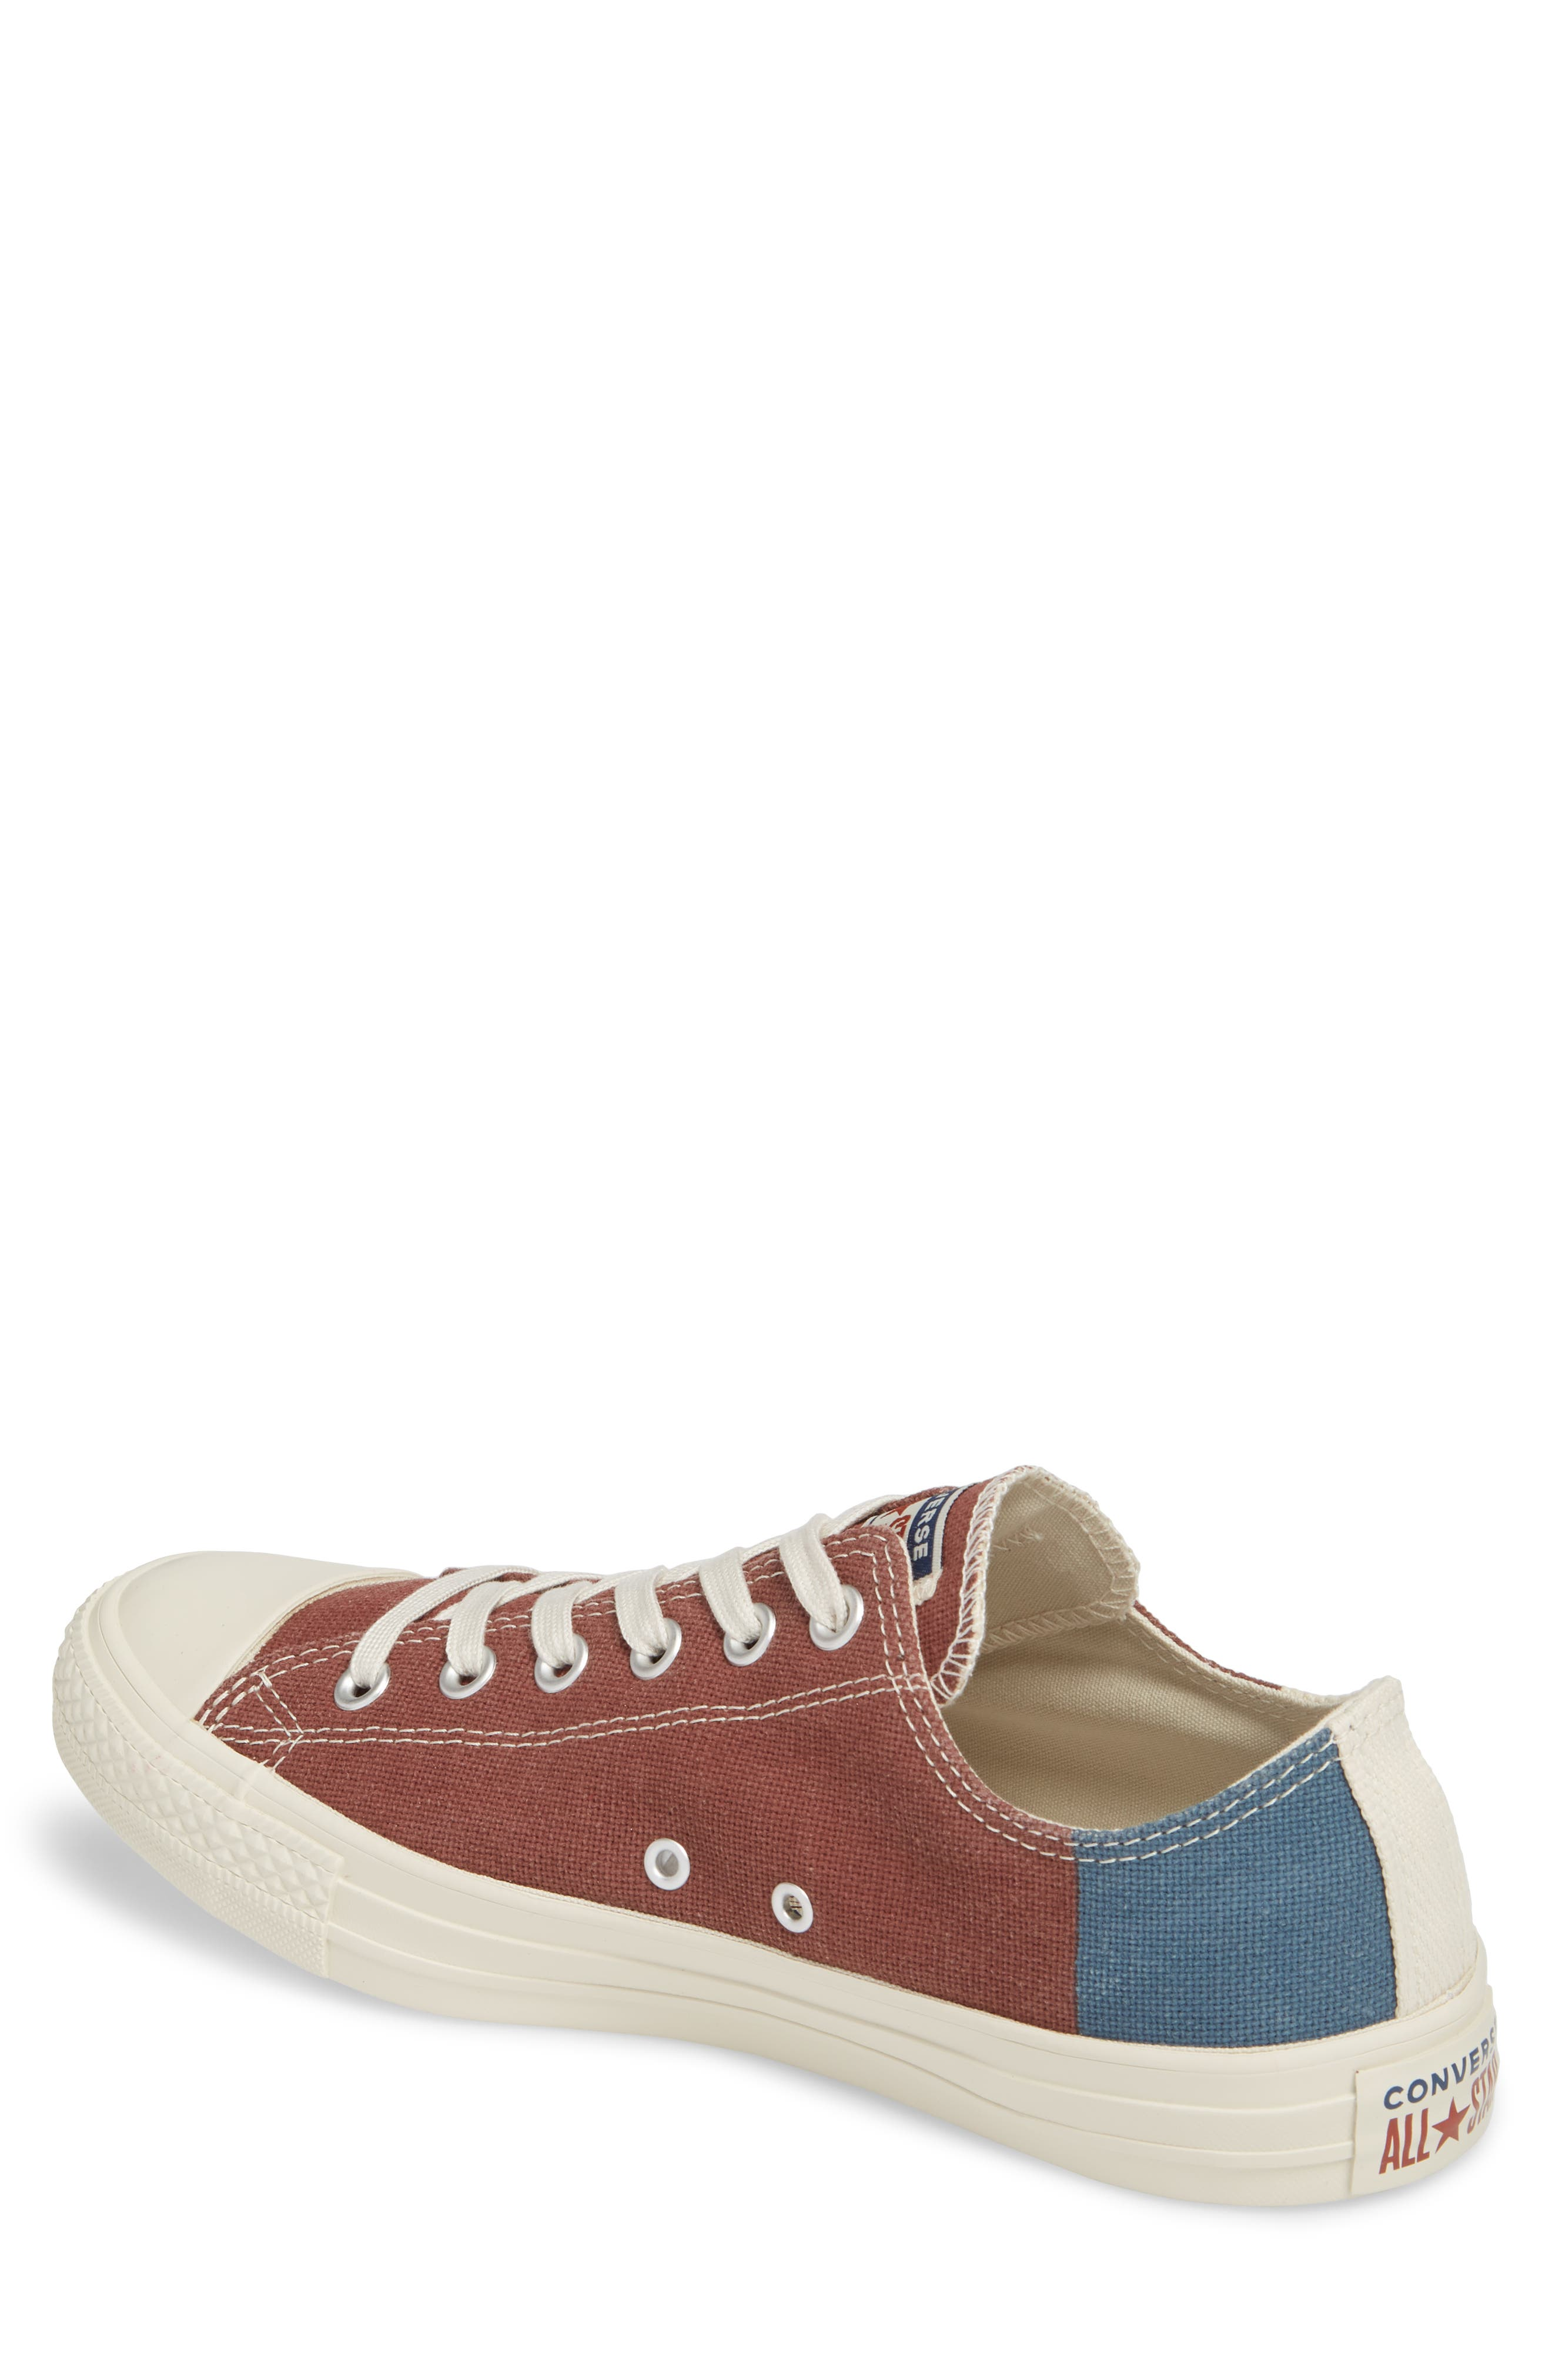 Chuck Taylor<sup>®</sup> All Star<sup>®</sup> Jute Americana Low Top Sneaker,                             Alternate thumbnail 2, color,                             Aegean Storm